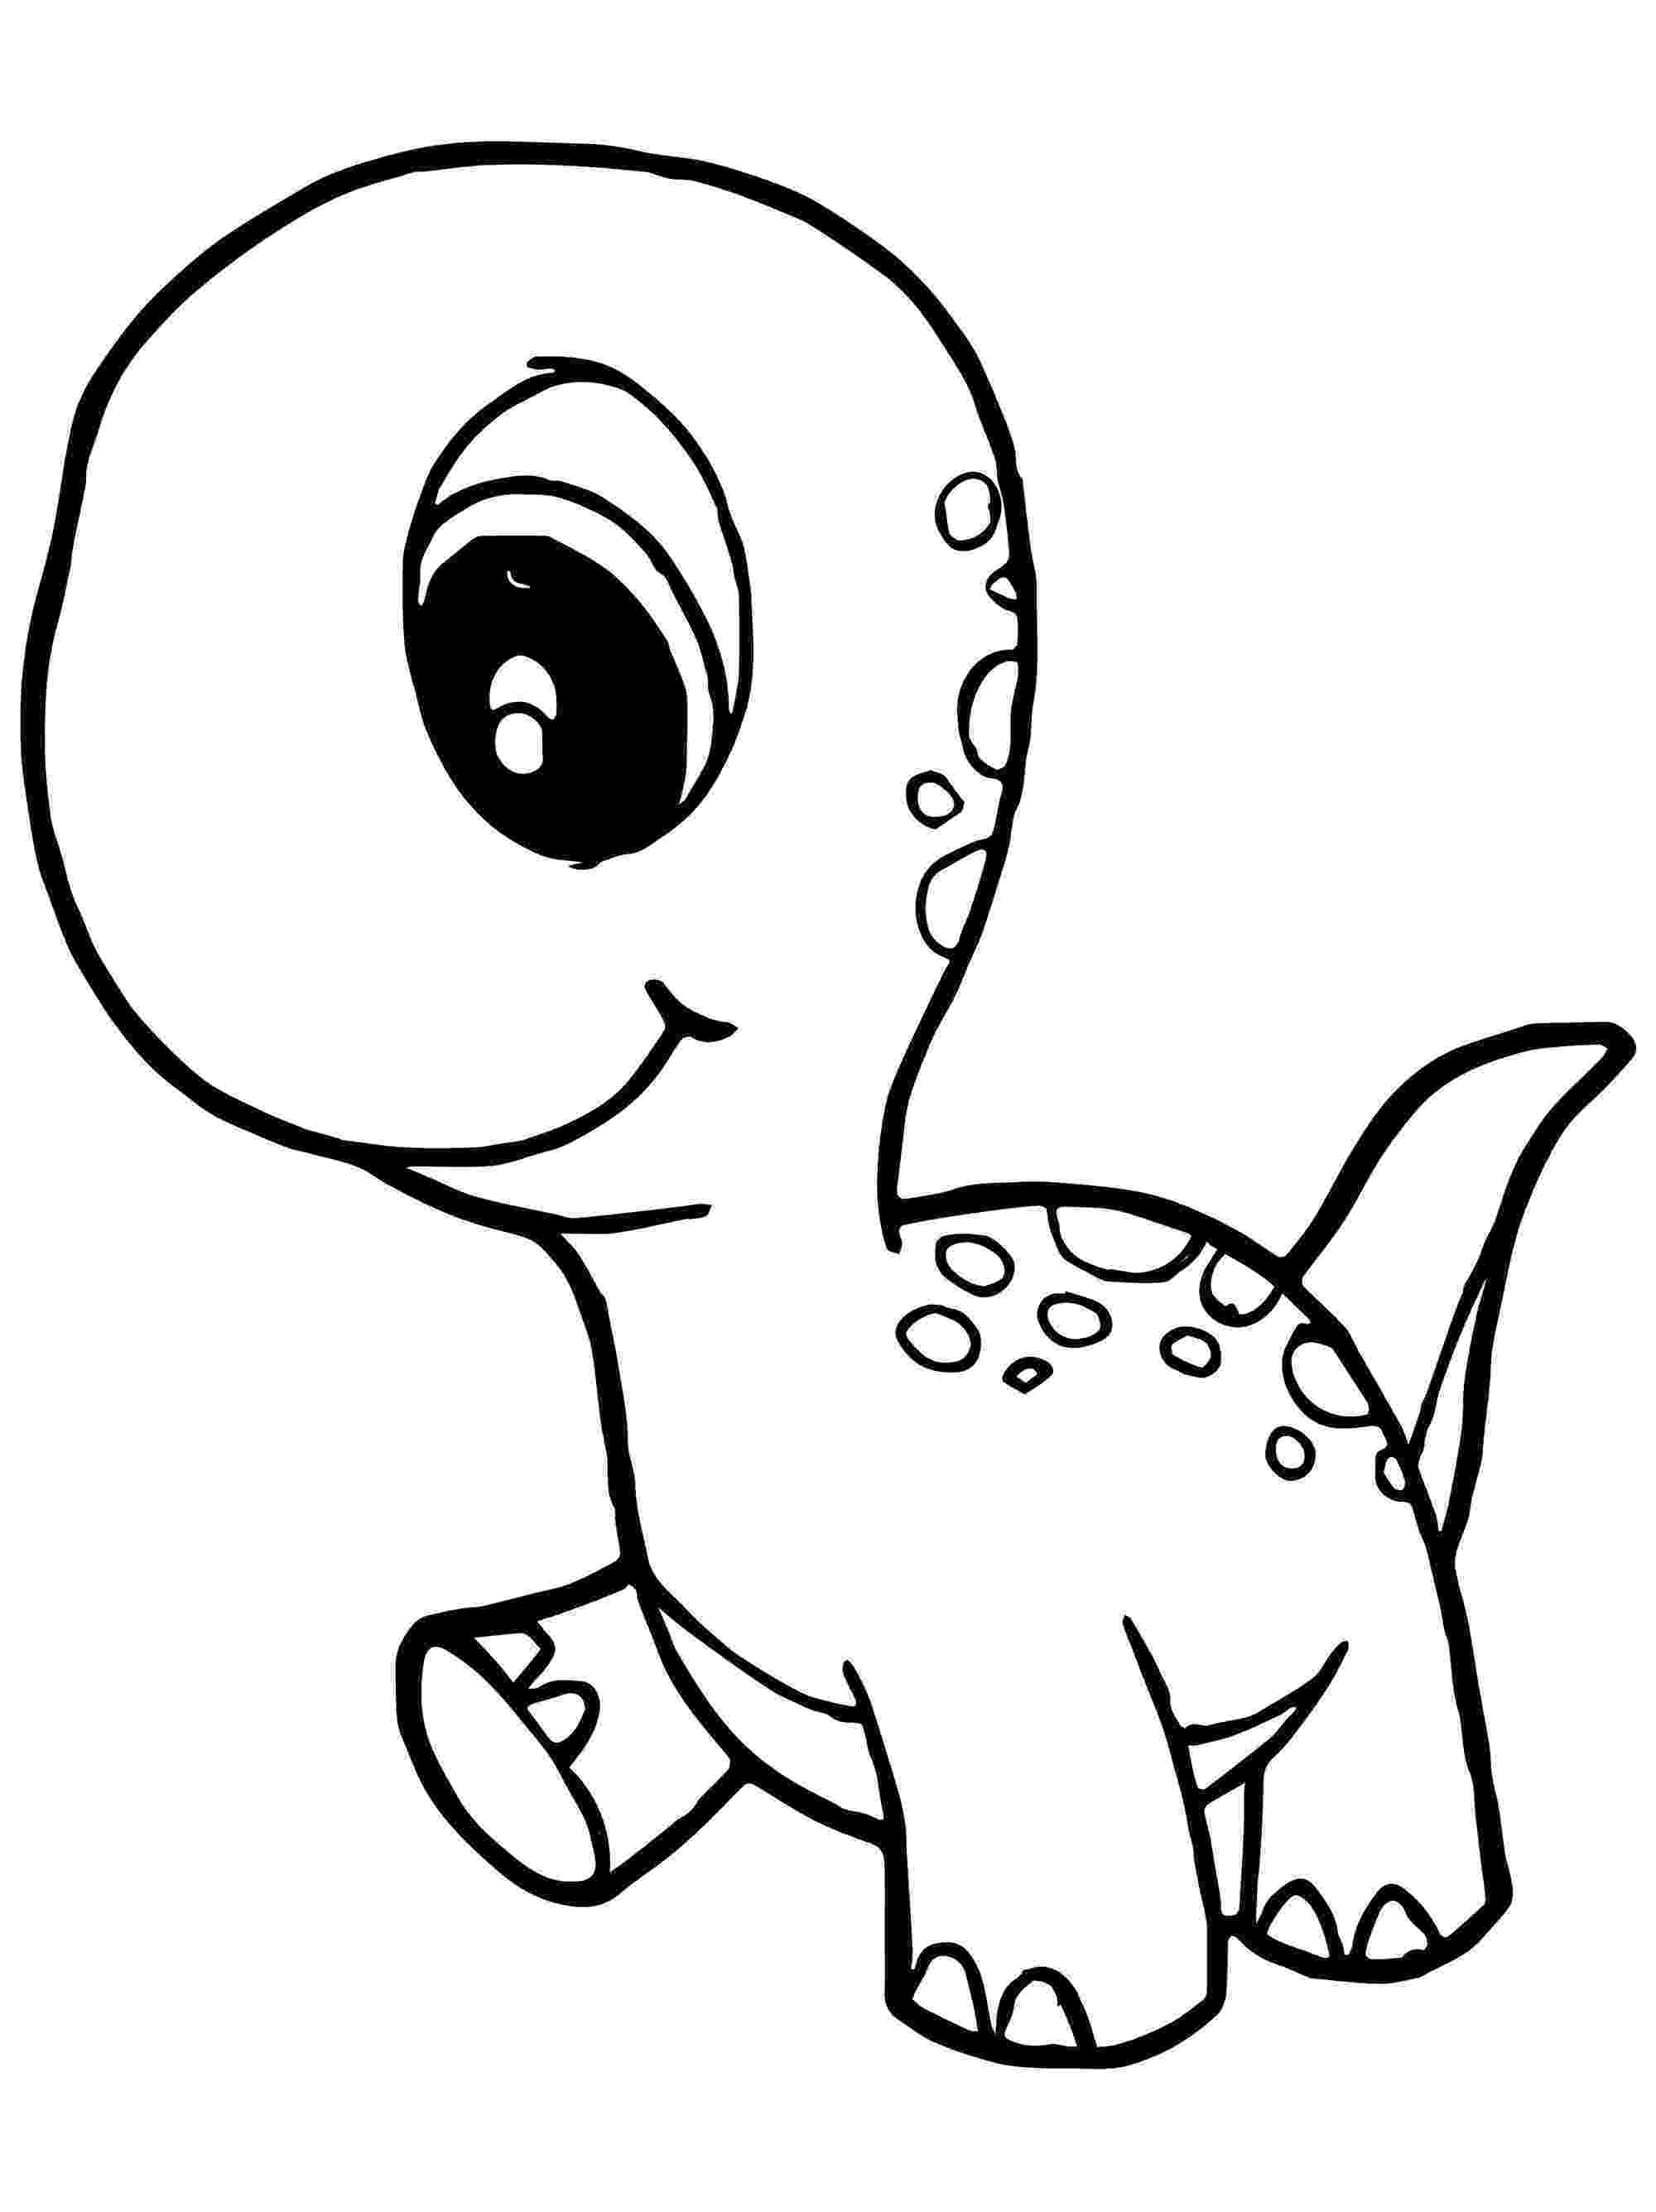 dinosaur coloring pages for toddlers free printable dinosaur coloring pages for kids pages coloring for toddlers dinosaur